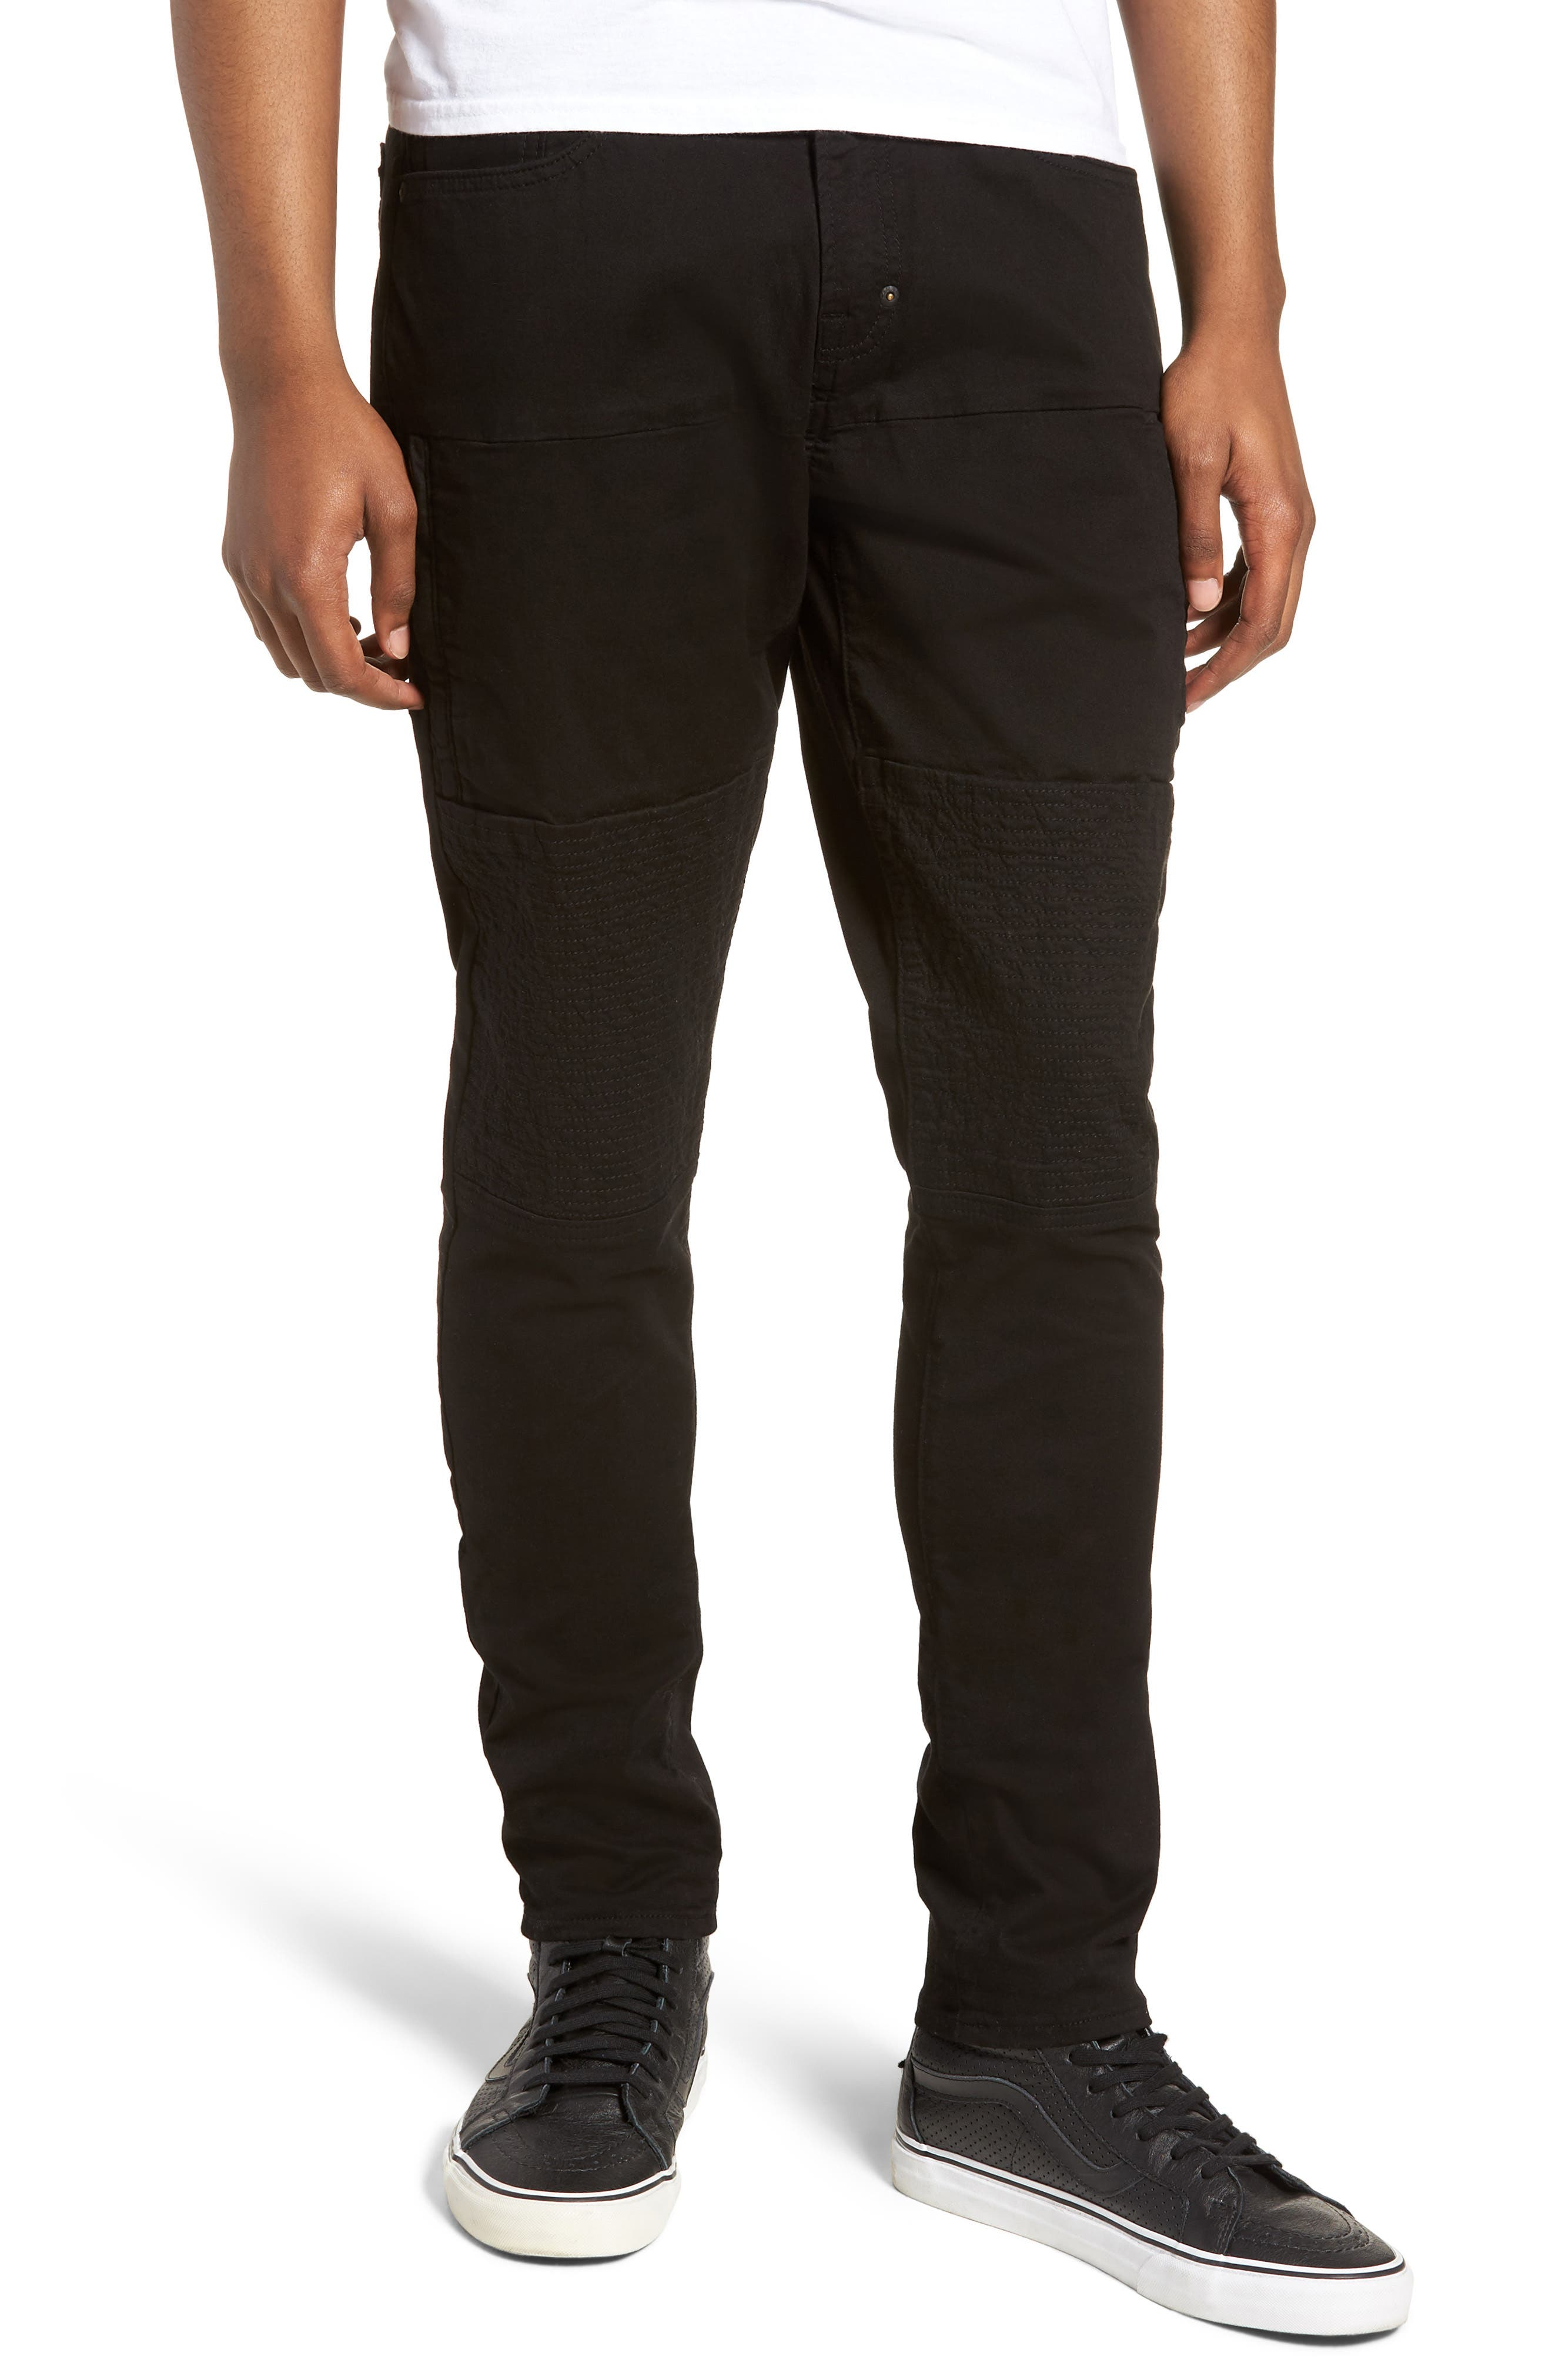 Le Sabre Slim Fit Jeans,                         Main,                         color, Black